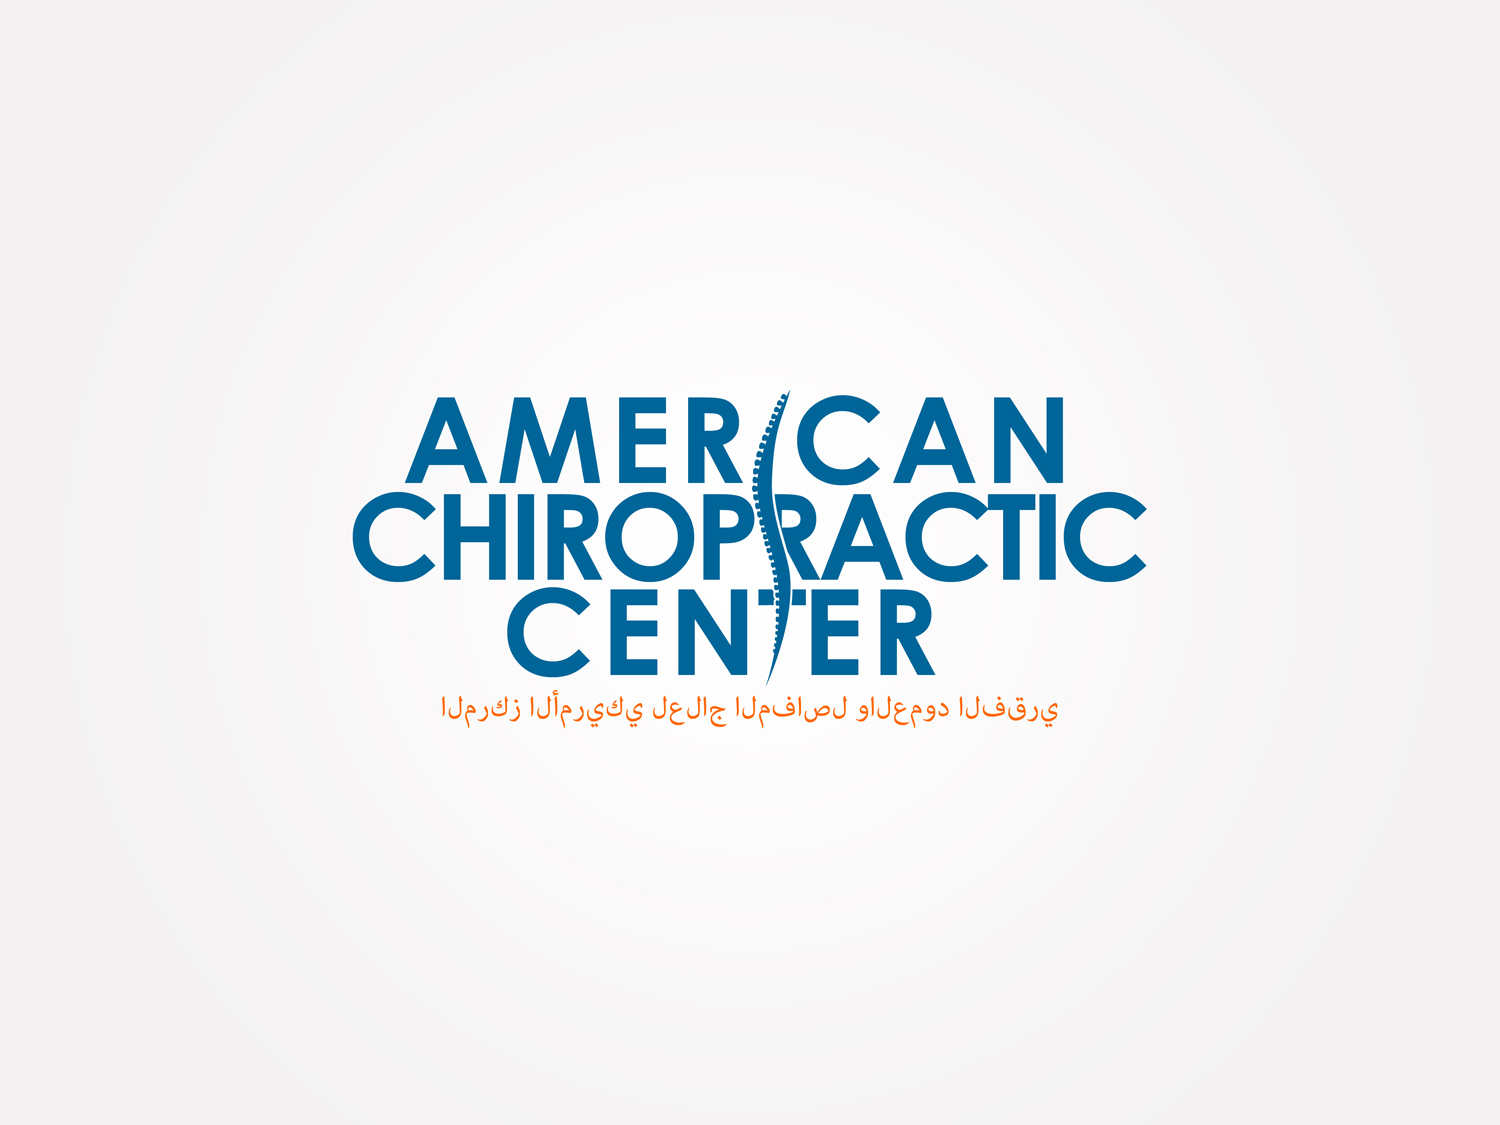 Logo Design by Qoaldjsk - Entry No. 244 in the Logo Design Contest Logo Design for American Chiropractic Center.